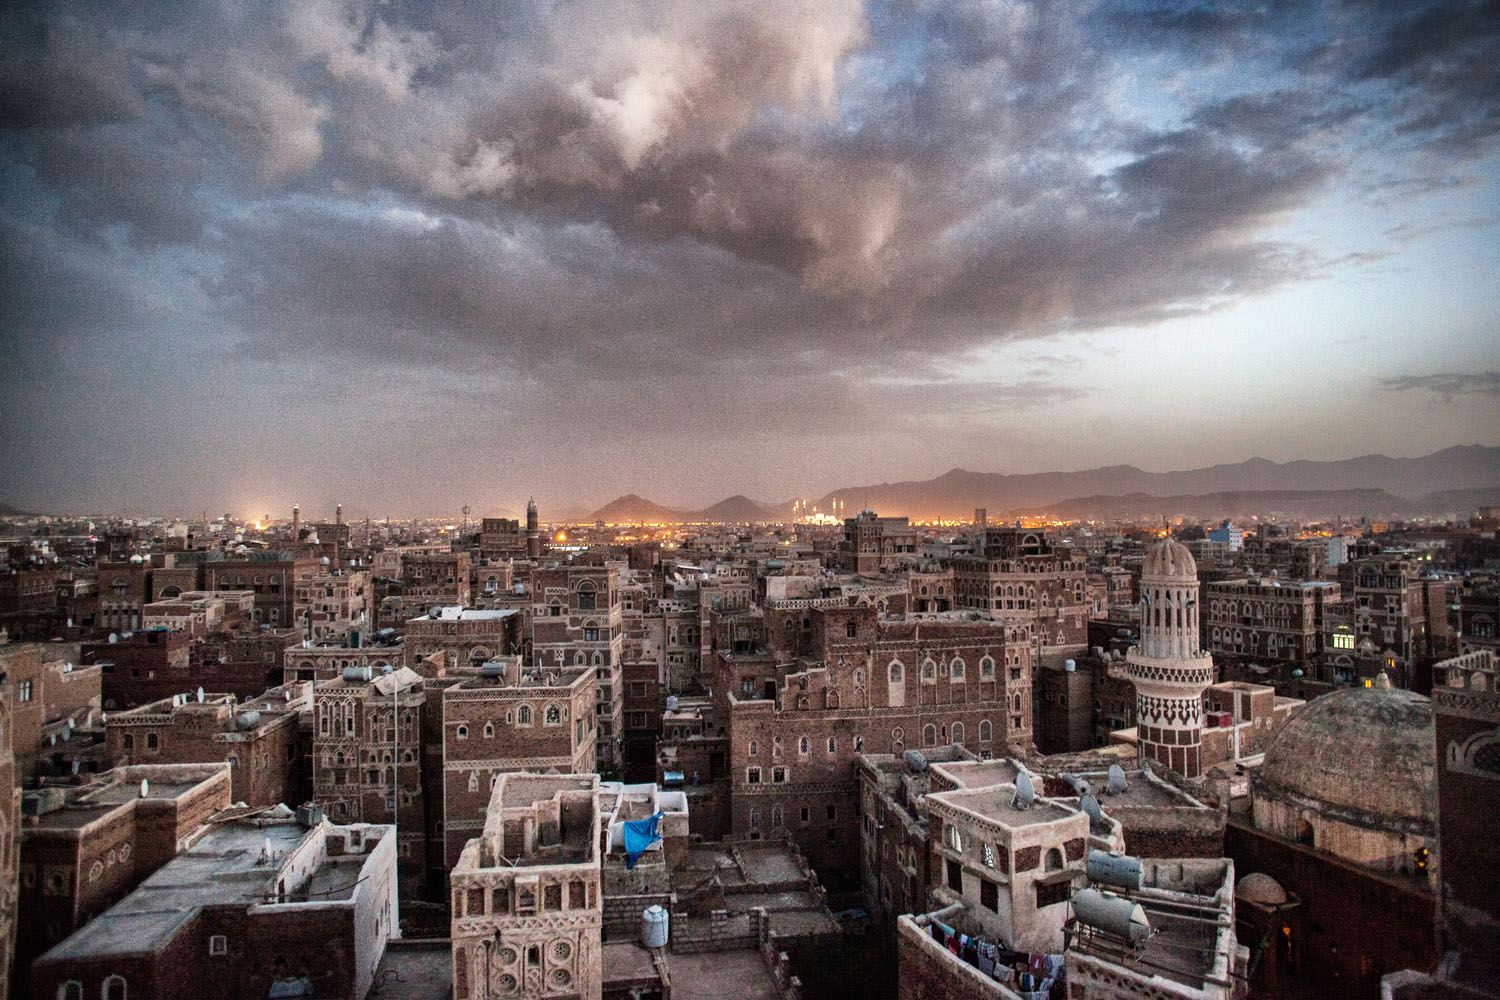 The sun sets over the Old City of Sana'a.